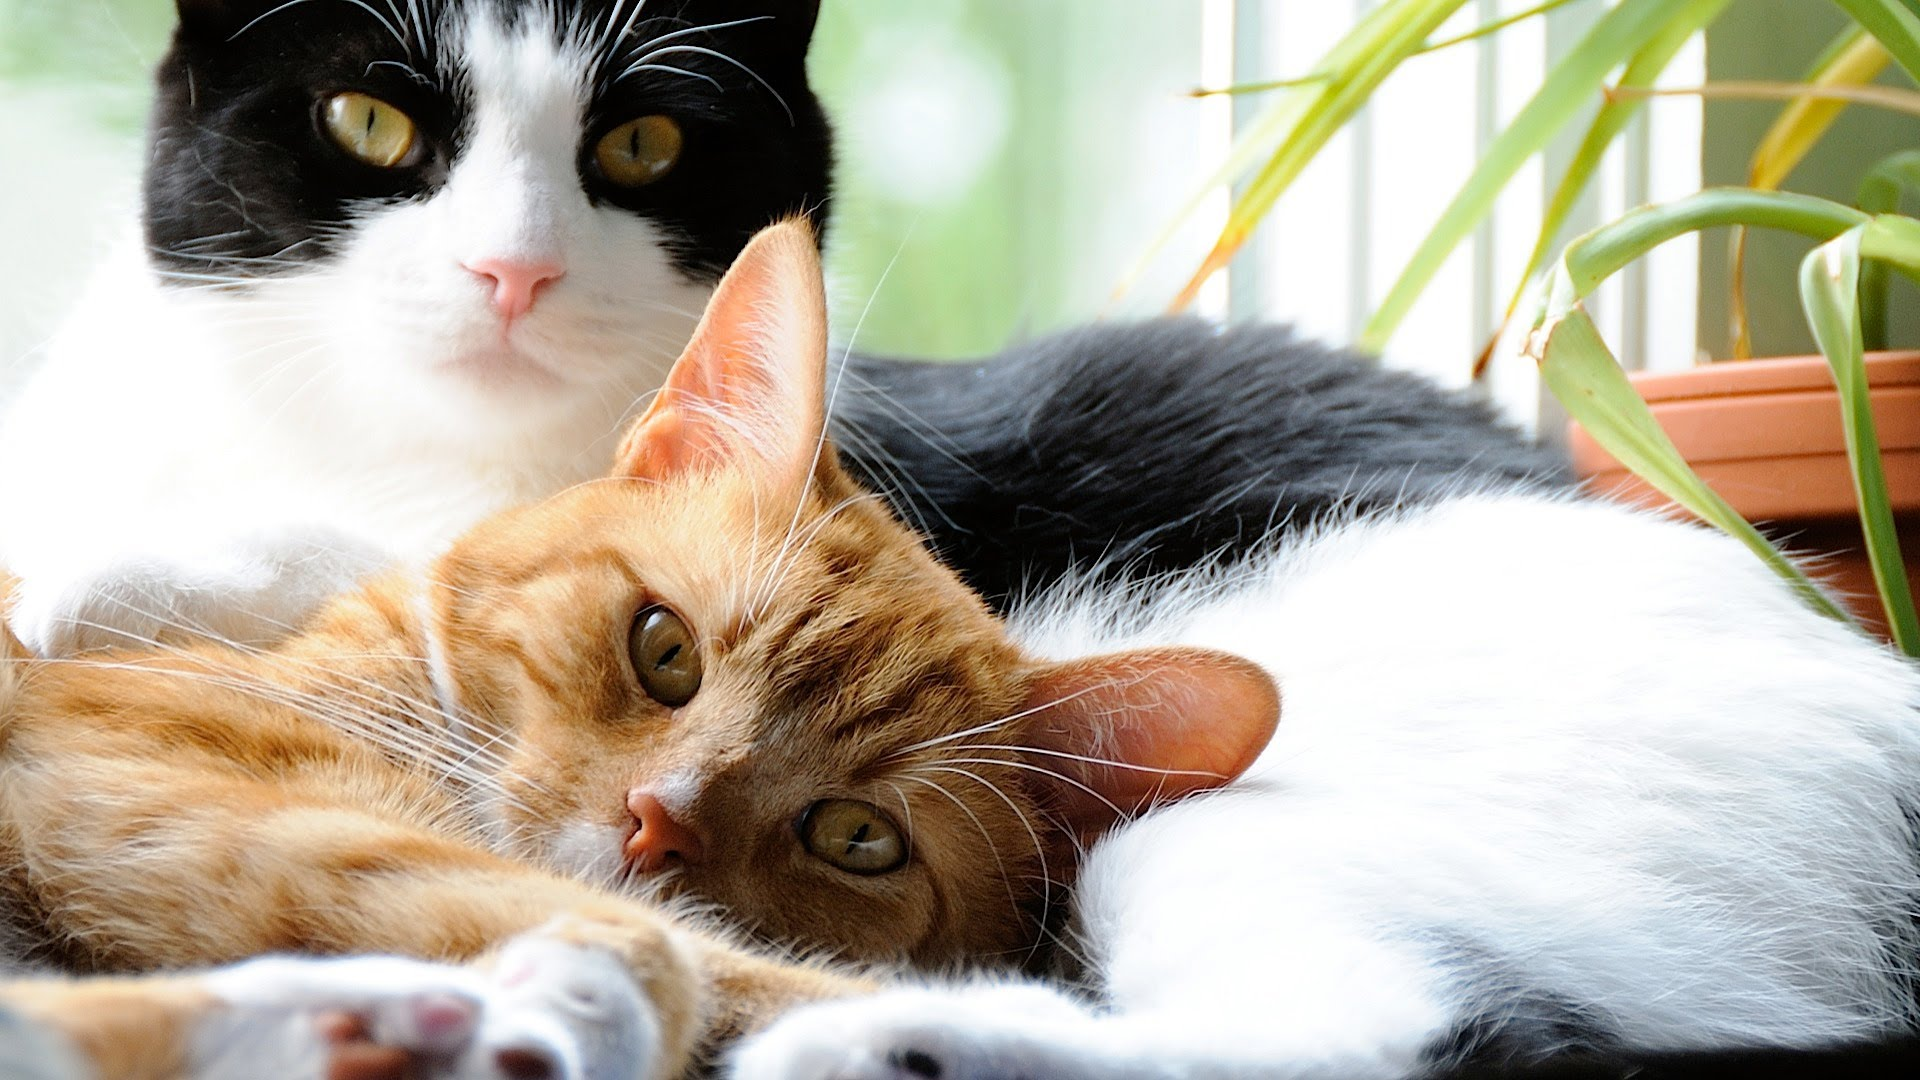 Best Ways to Treat a Cat With Upper Respiratory Issues